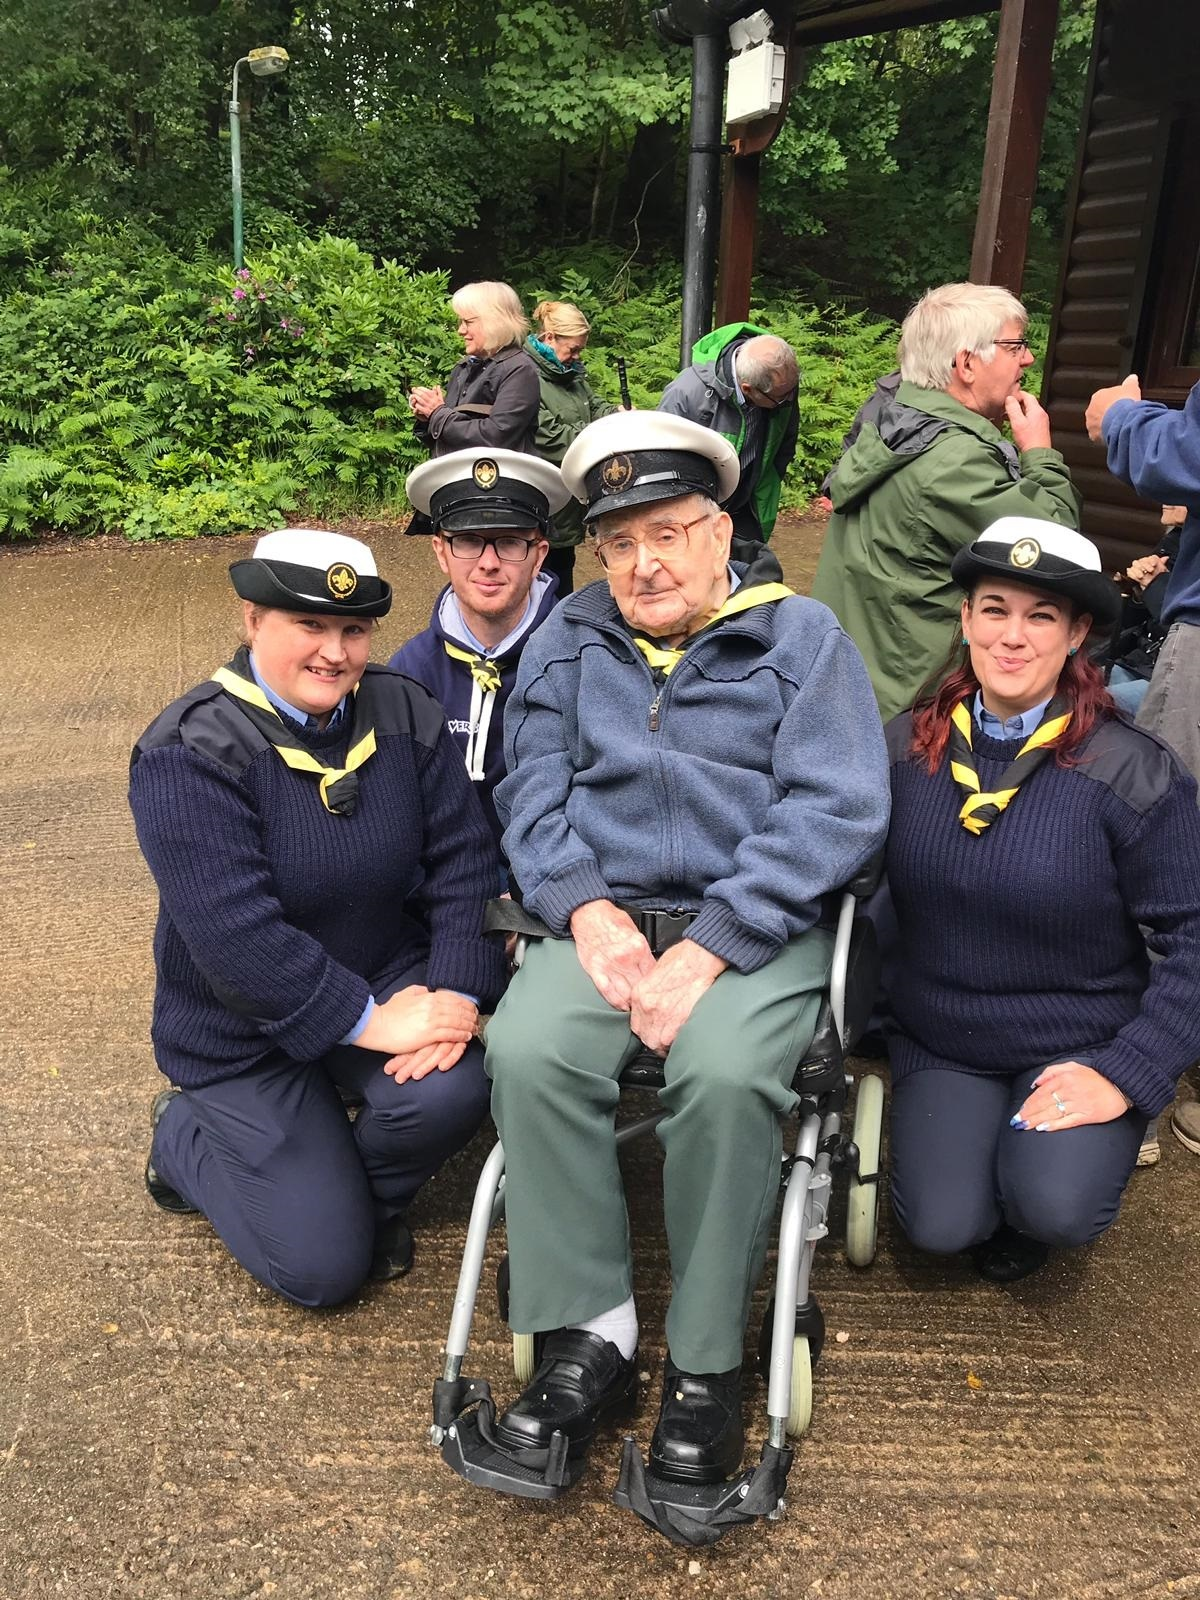 Ellesmere Port retired Veteran Scout leader celebrates silver milestone of Scouting facility he founded